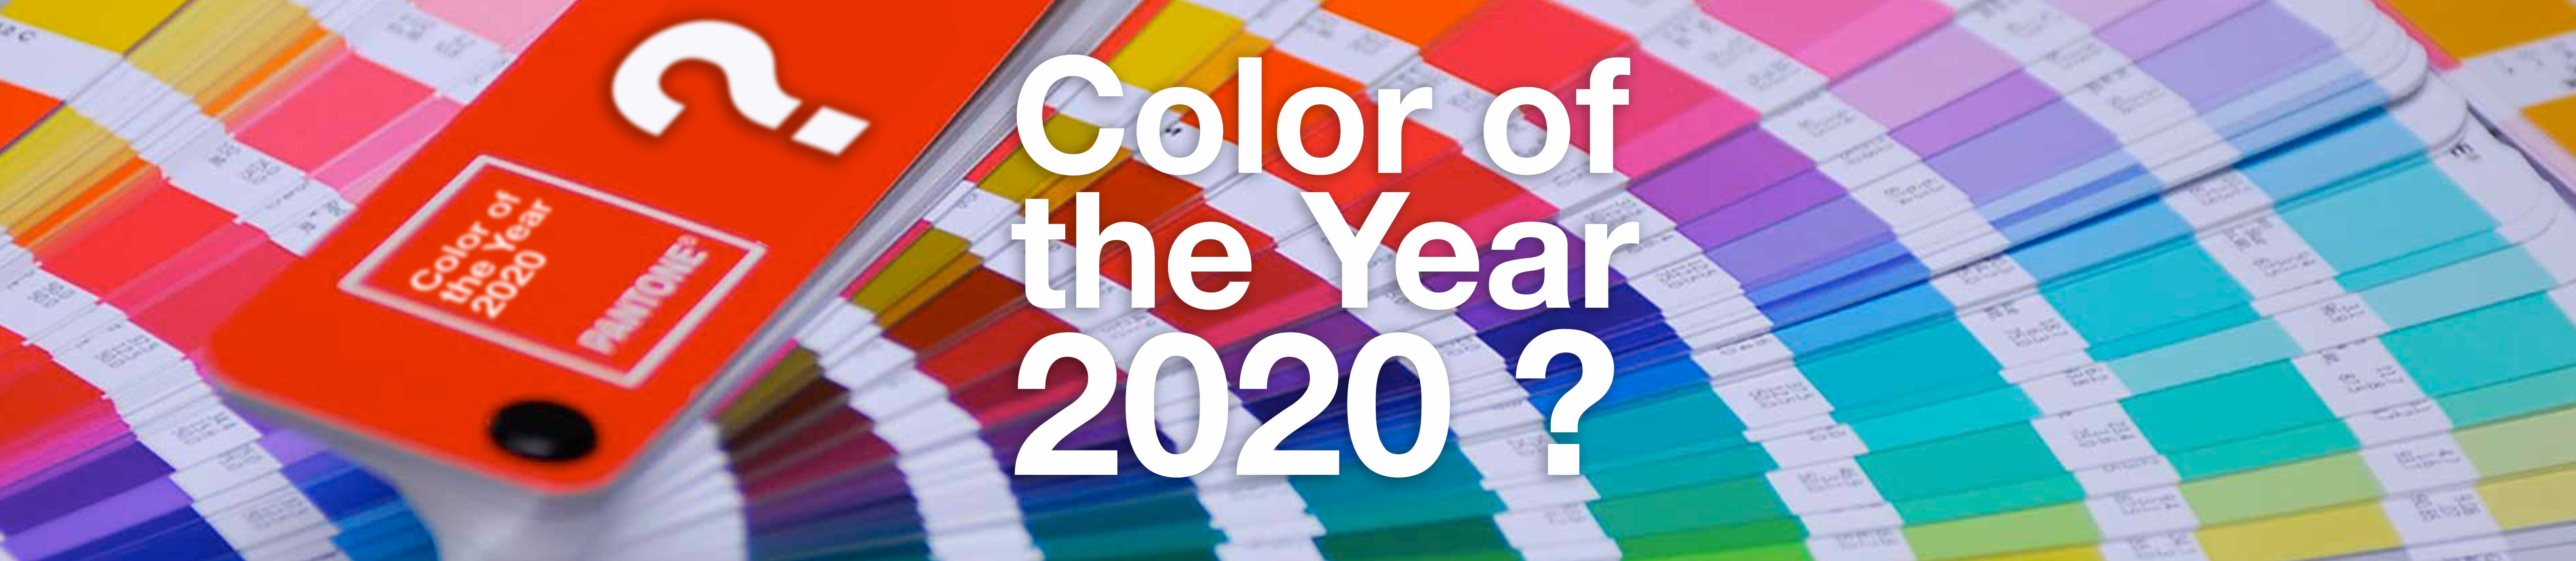 color of the year 2020?